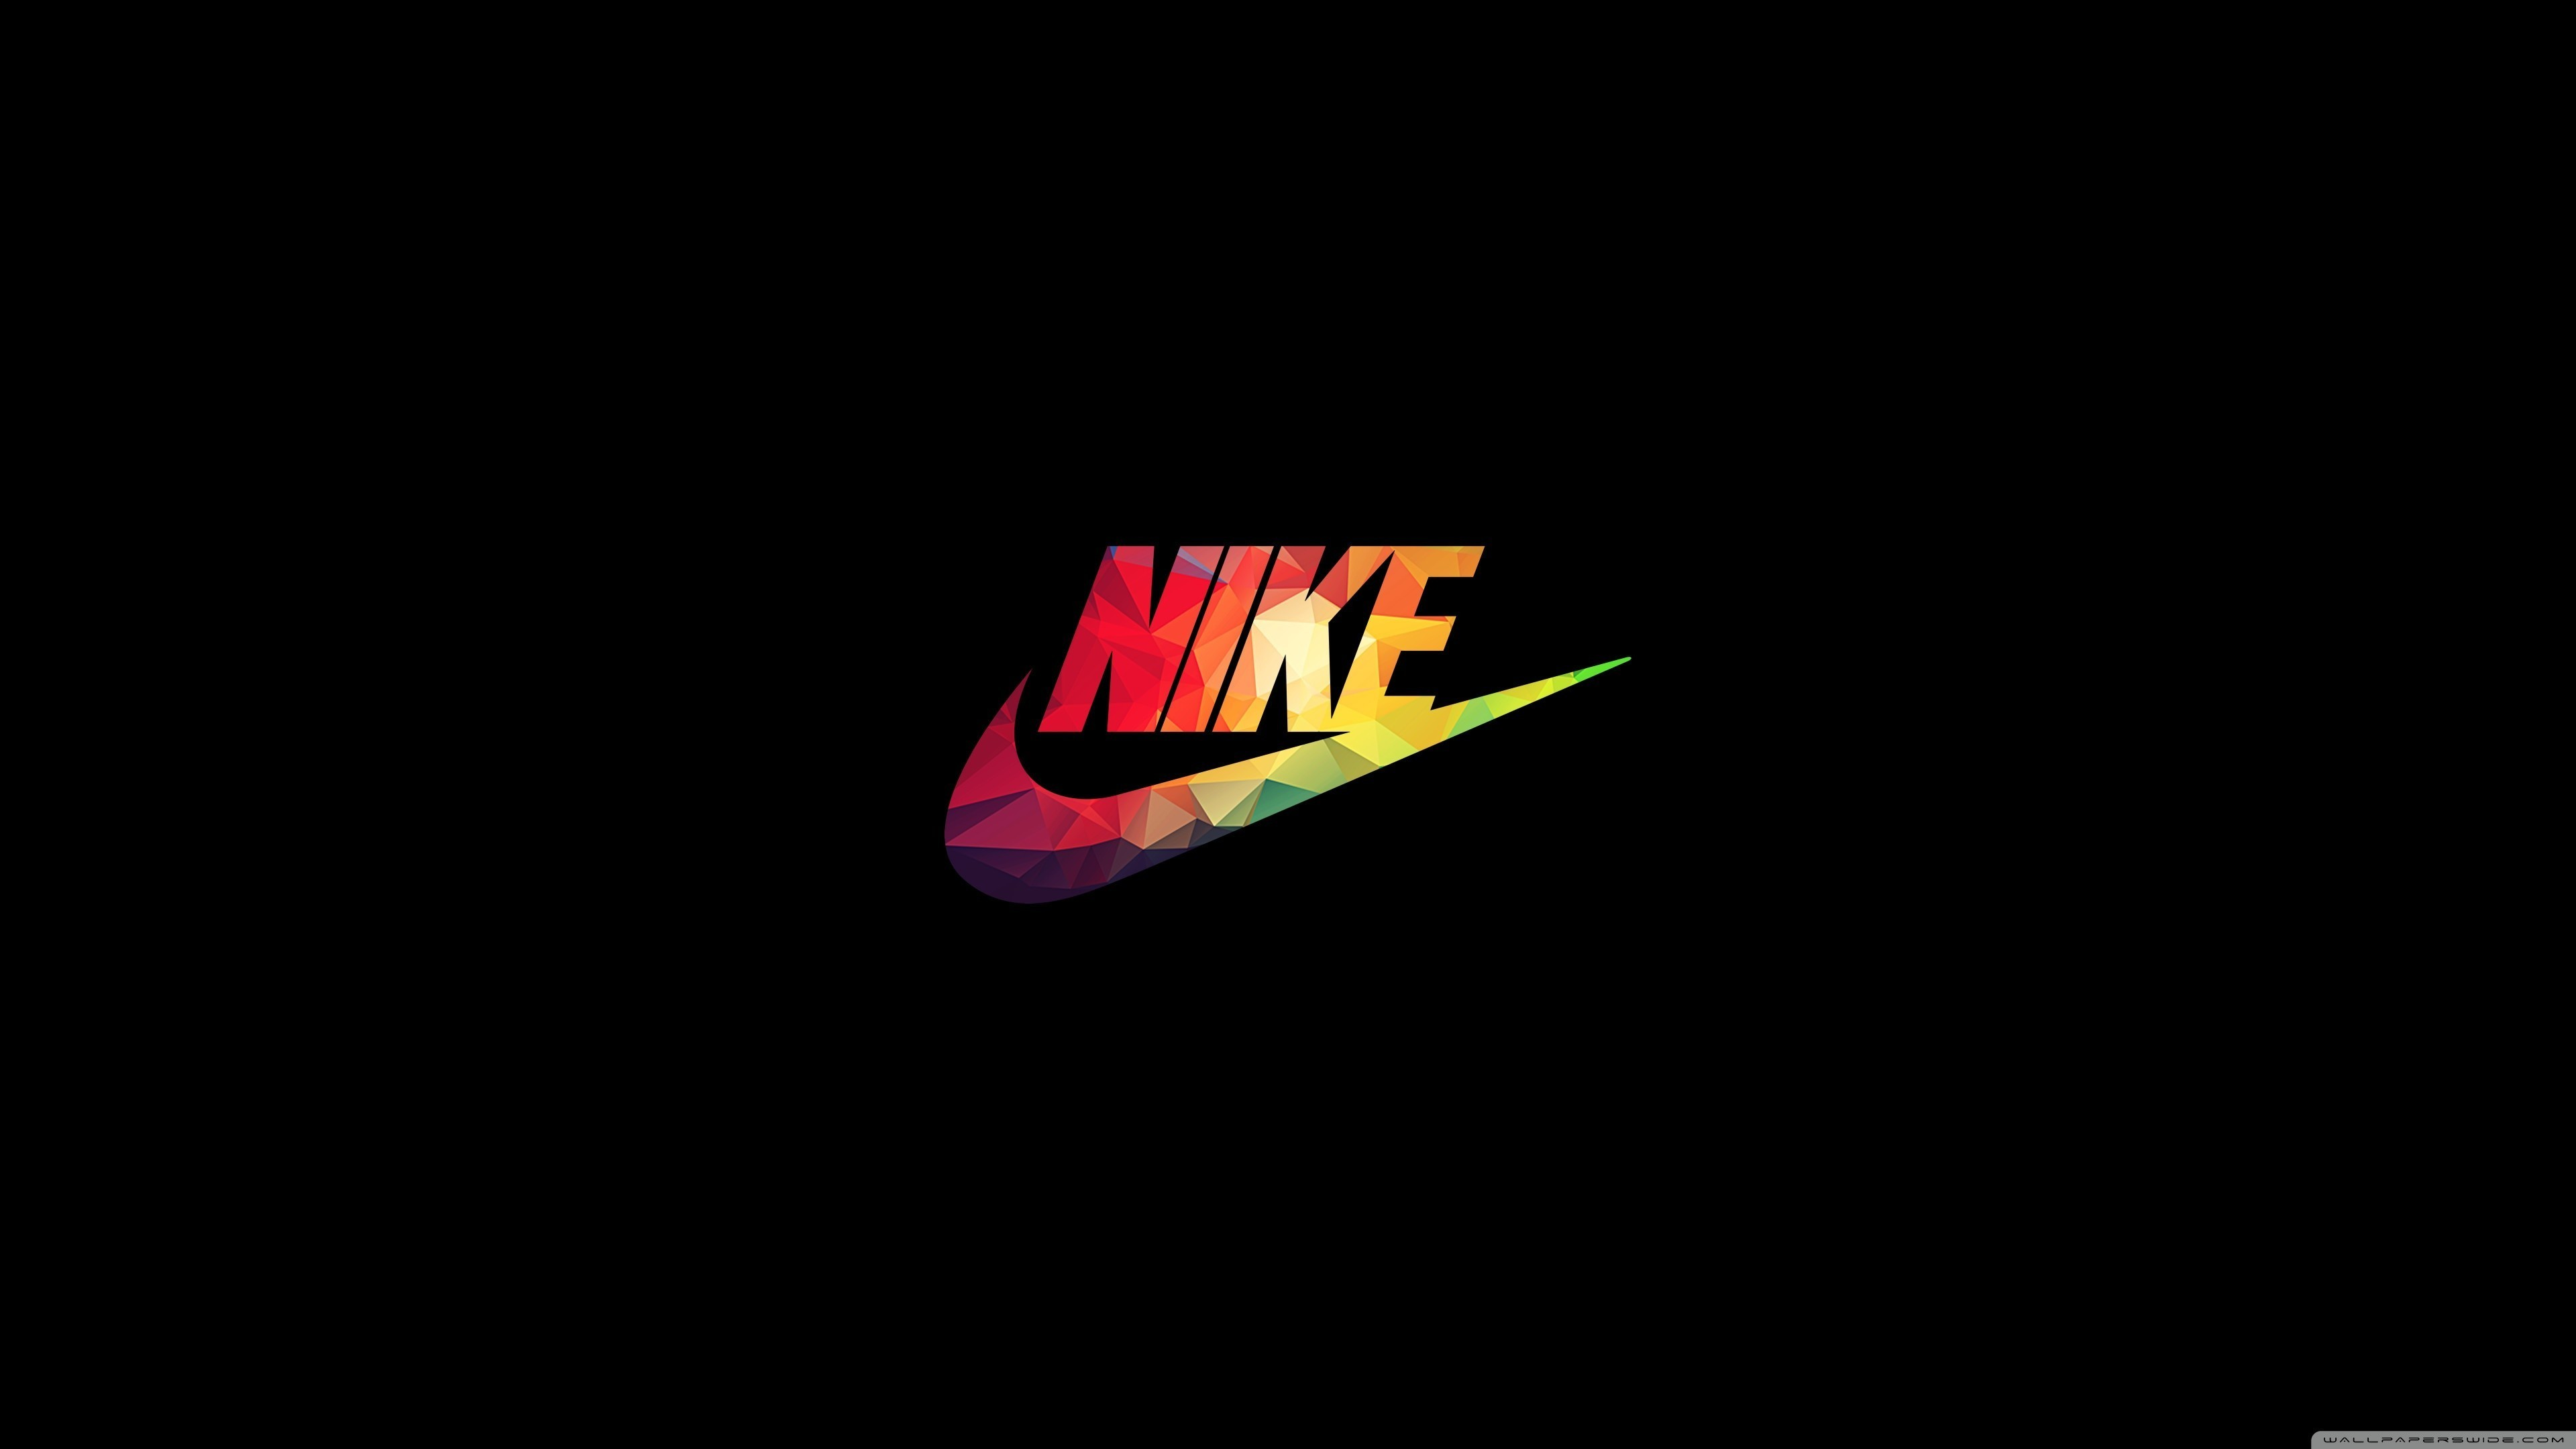 3840x2160 Nike Basketball Wallpaper